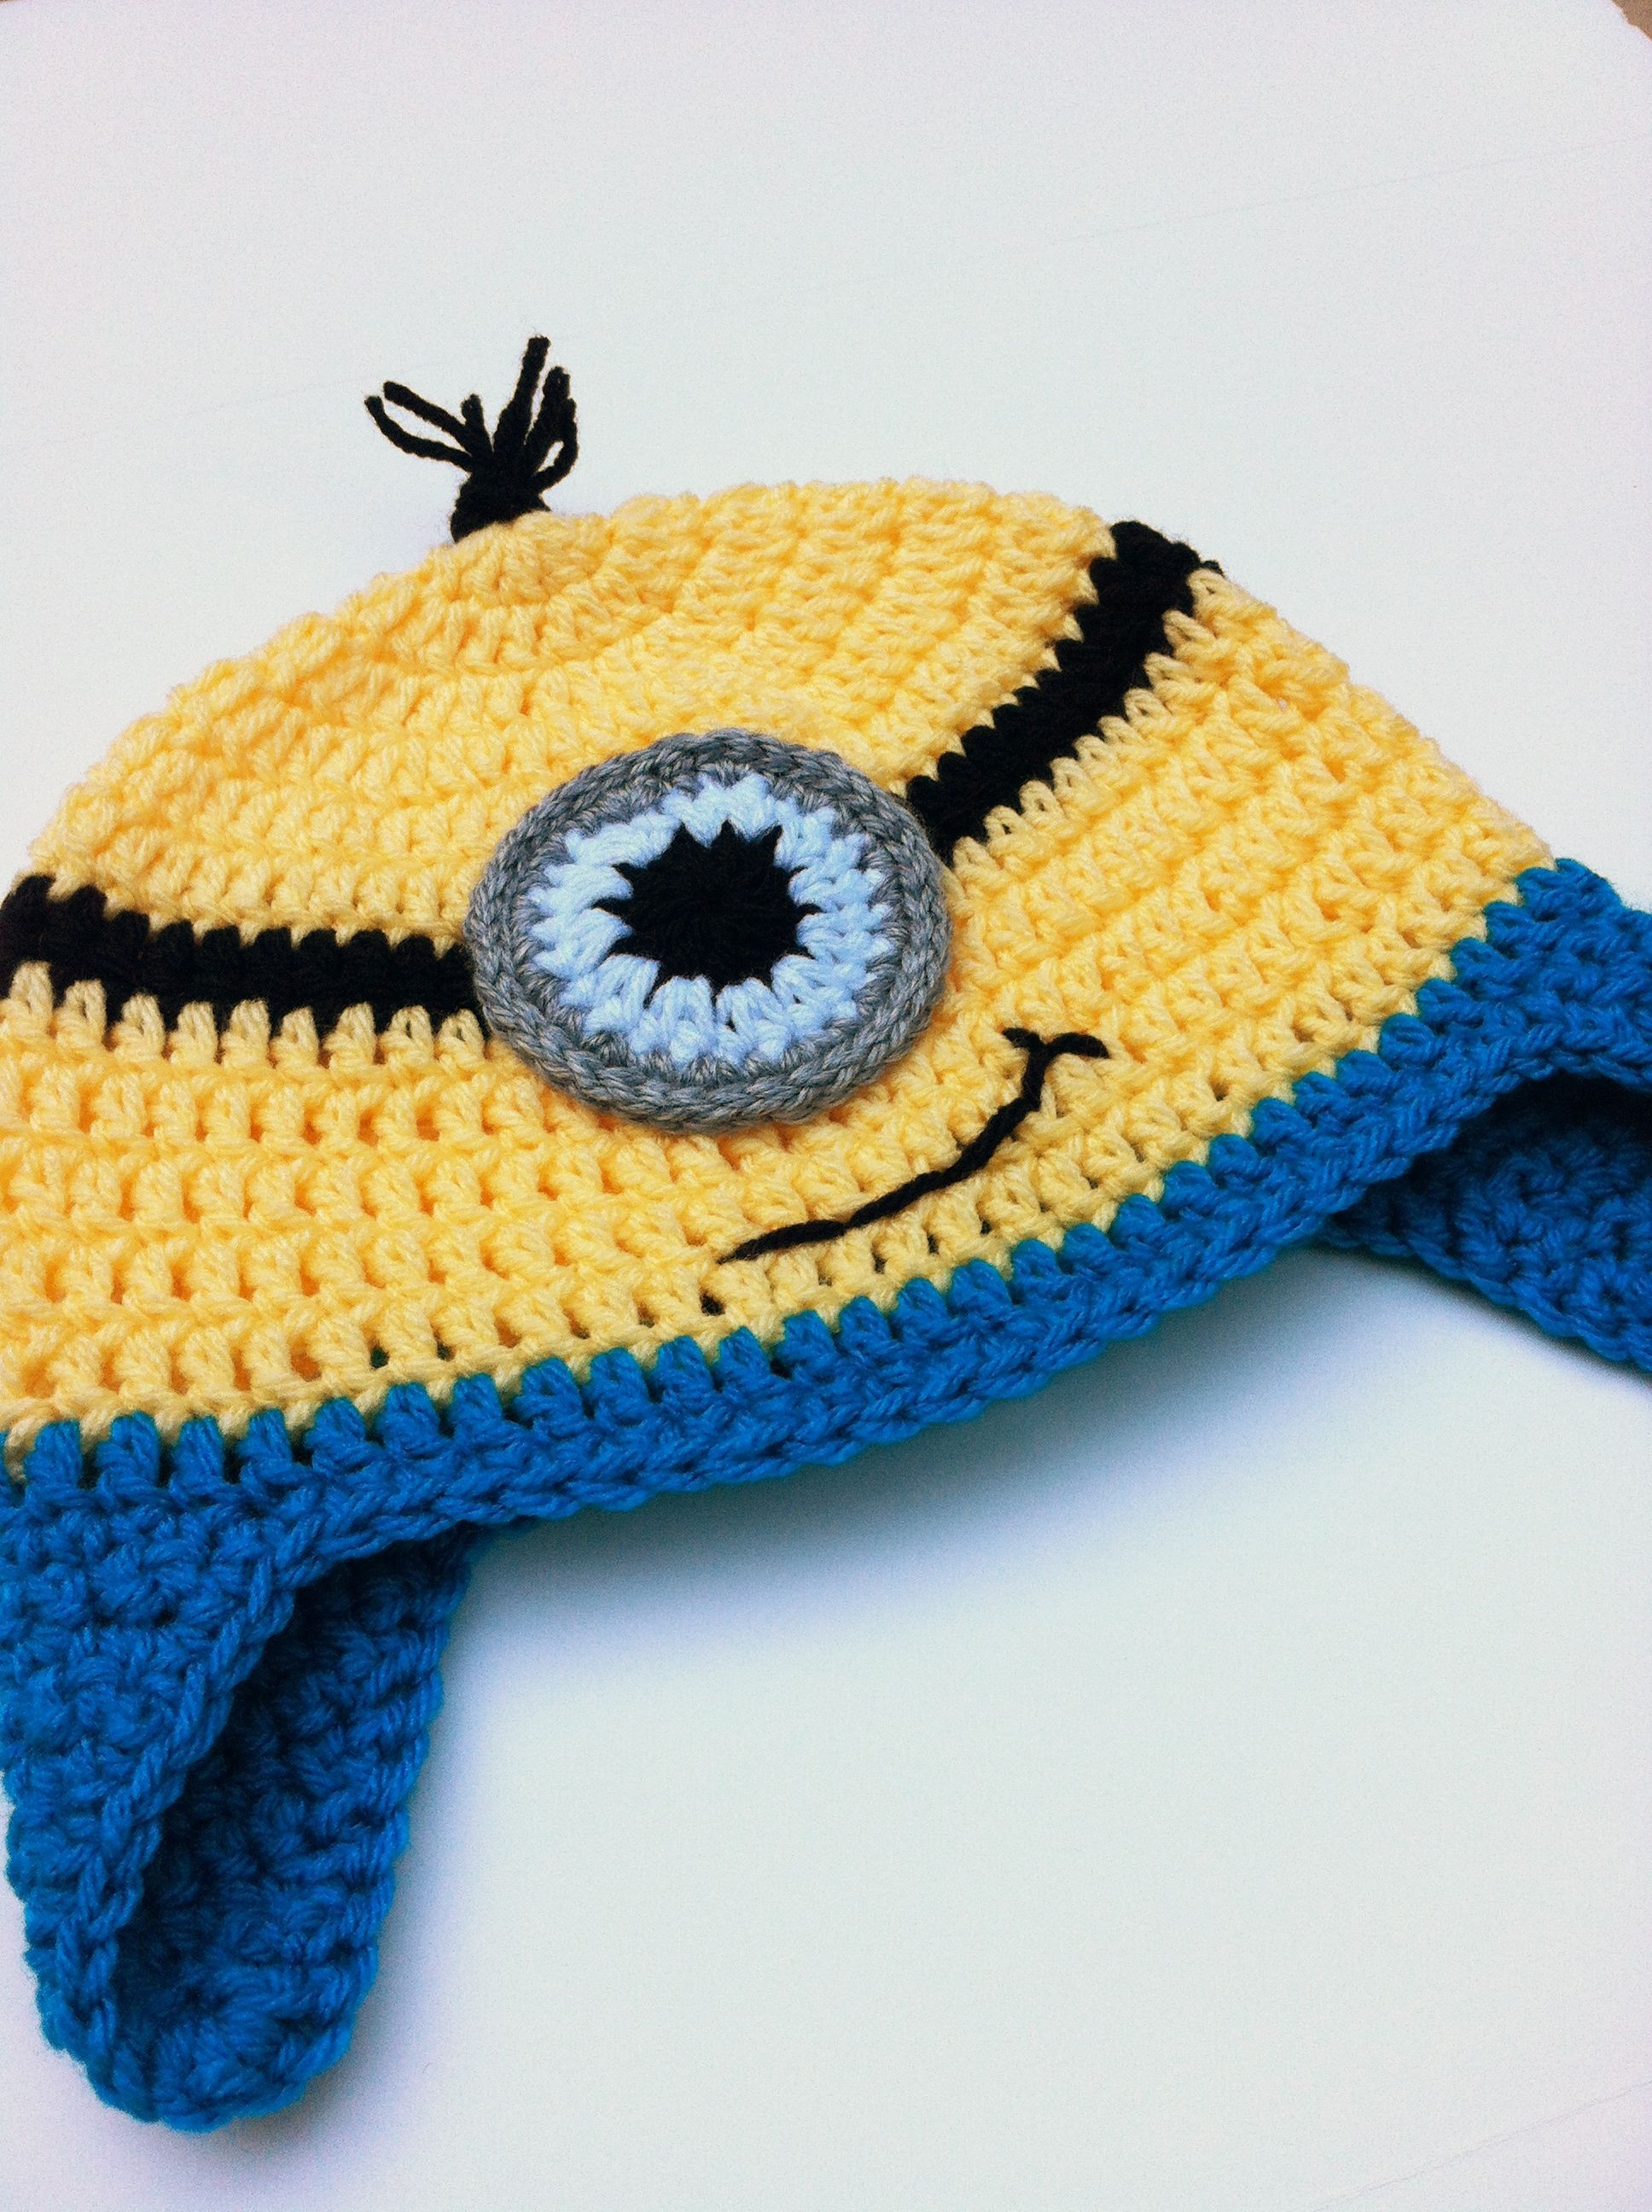 3 Cute Designs for Characters of Free Crochet Patterns for Minions #minioncrochetpatterns Free crochet patterns for Minions become a recommended guide. You can use it to create awesome Minions characters. There are some characters in Minion... #CrochetPatterns #FreeCrochet #MinionsCrochet #crocheteasy #minioncrochetpatterns